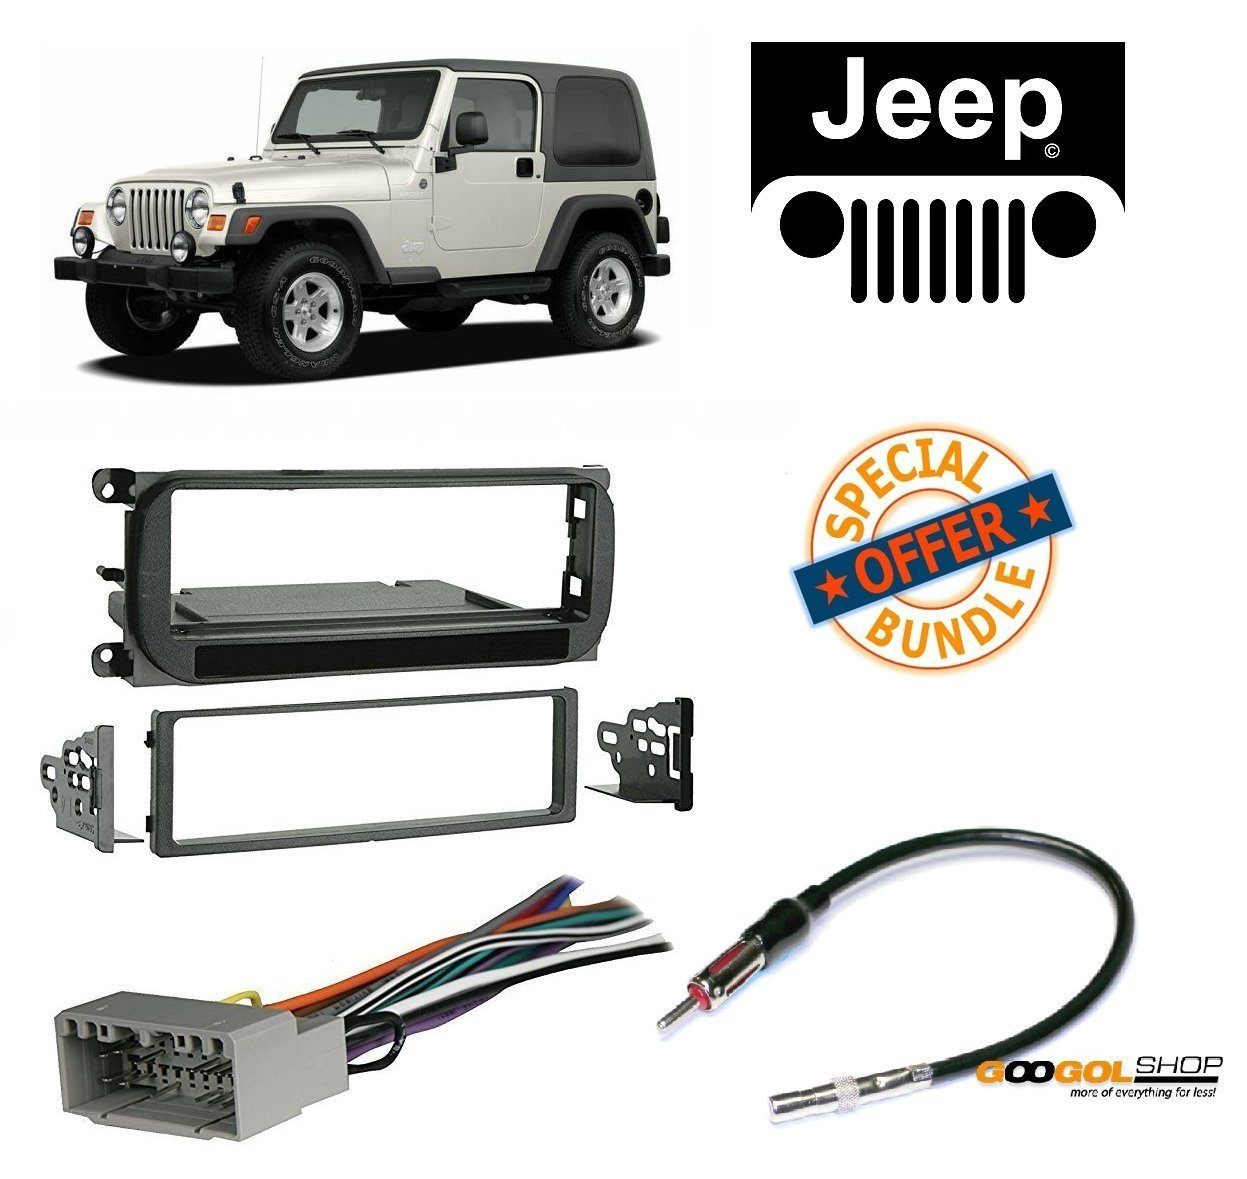 [SCHEMATICS_4NL]  Radio Stereo Install Dash Kit + wire harness And antenna adapter for Jeep  Grand Cherokee (02-04), Liberty (02-07), Wrangler (03-06) - Walmart.com -  Walmart.com | 2004 Jeep Liberty Stereo Wiring Harness |  | Walmart